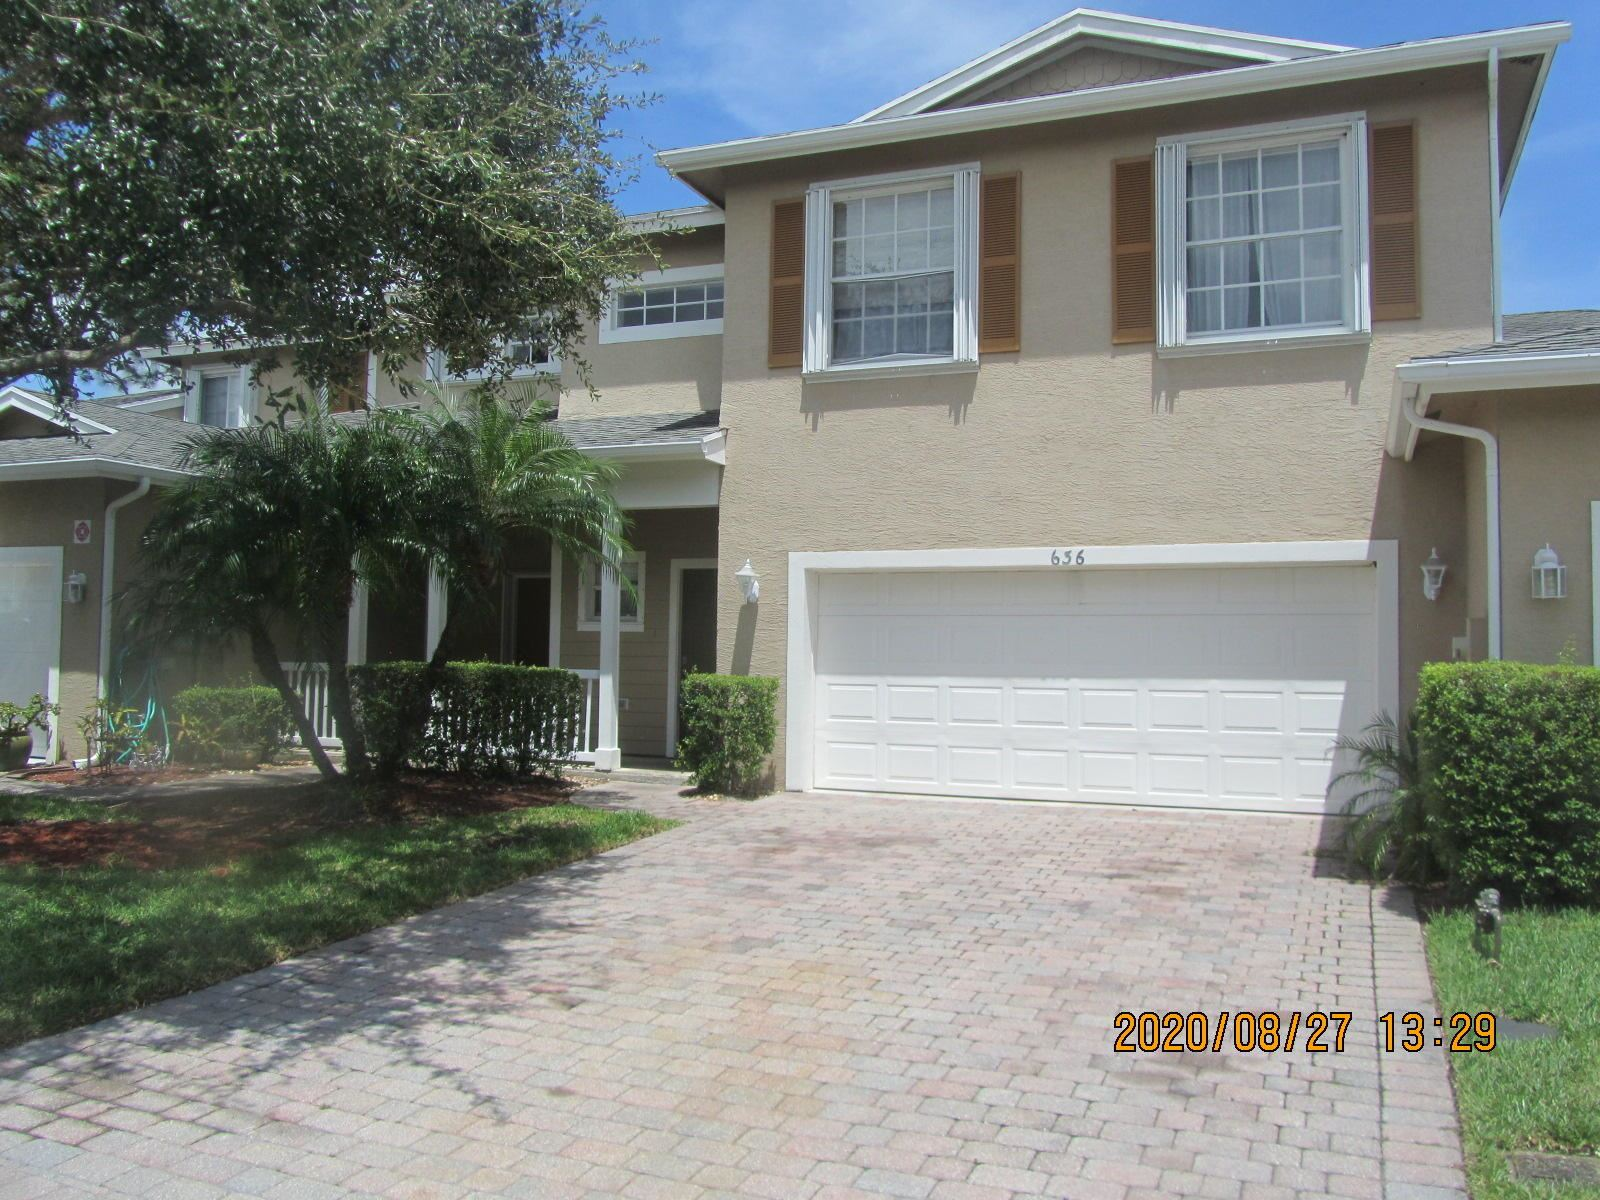 636 NE Bent Paddle Lane, Port Saint Lucie, FL 34983 - #: RX-10650126